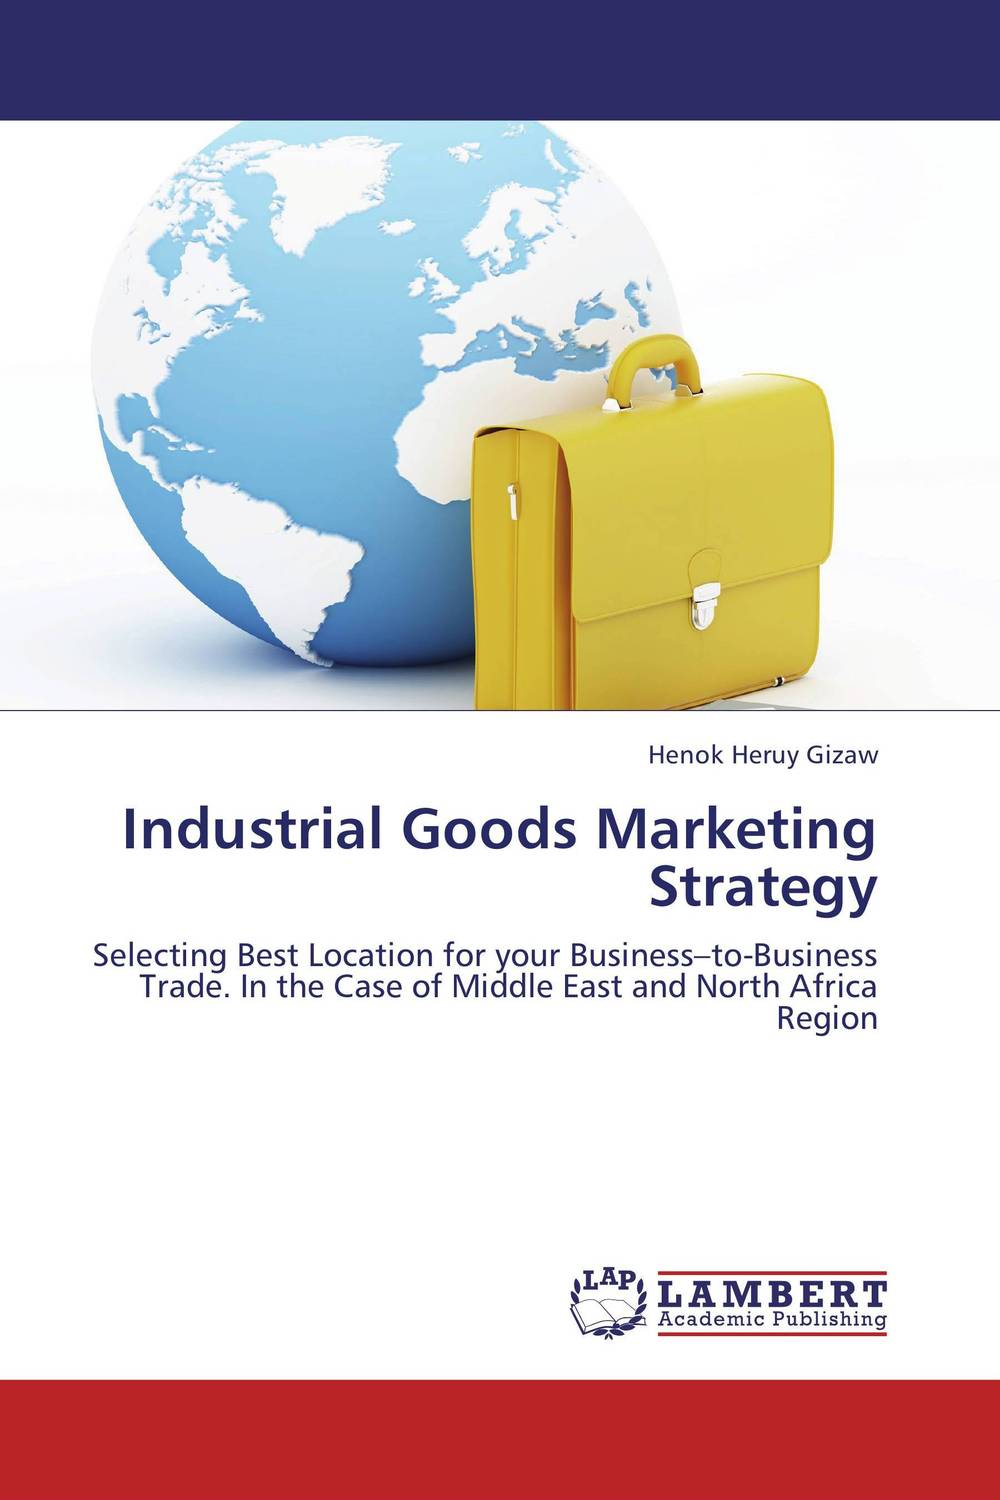 Industrial Goods Marketing Strategy